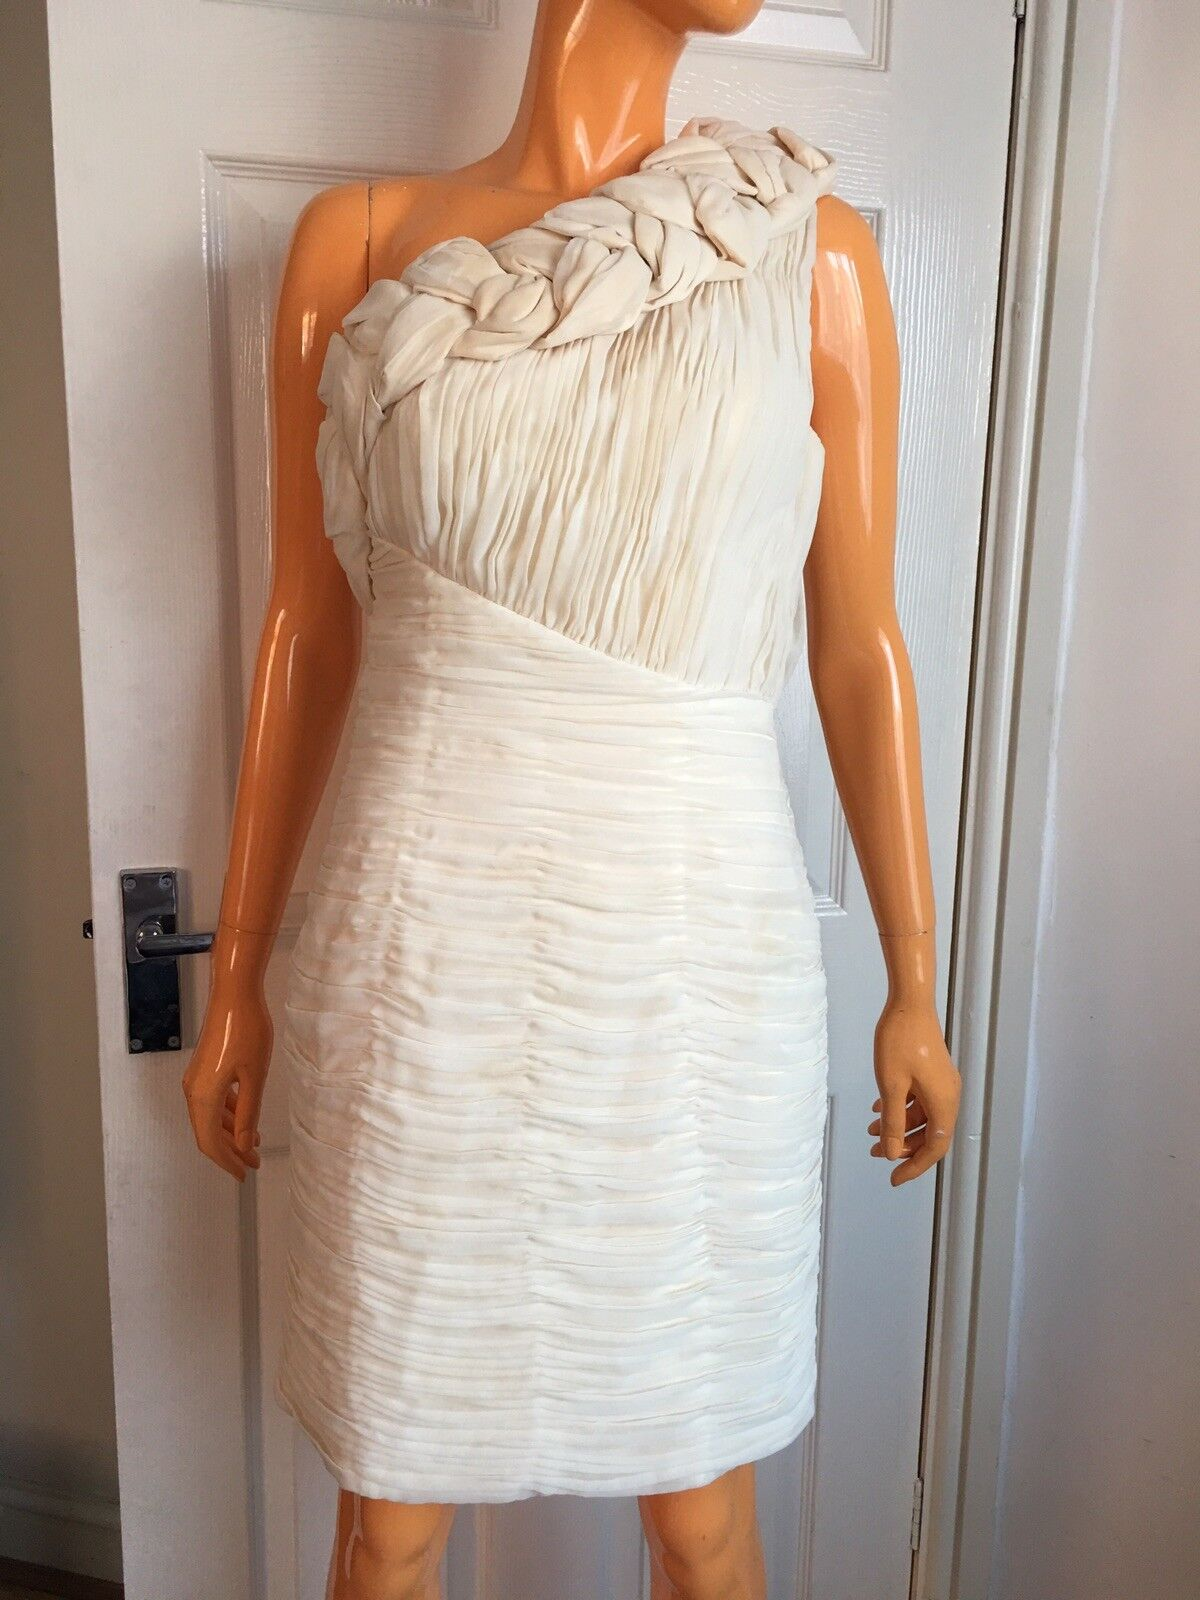 Rare Opulence Cream Ivory One Shoulder Plait Details Bodycon Ruched Dress UK10